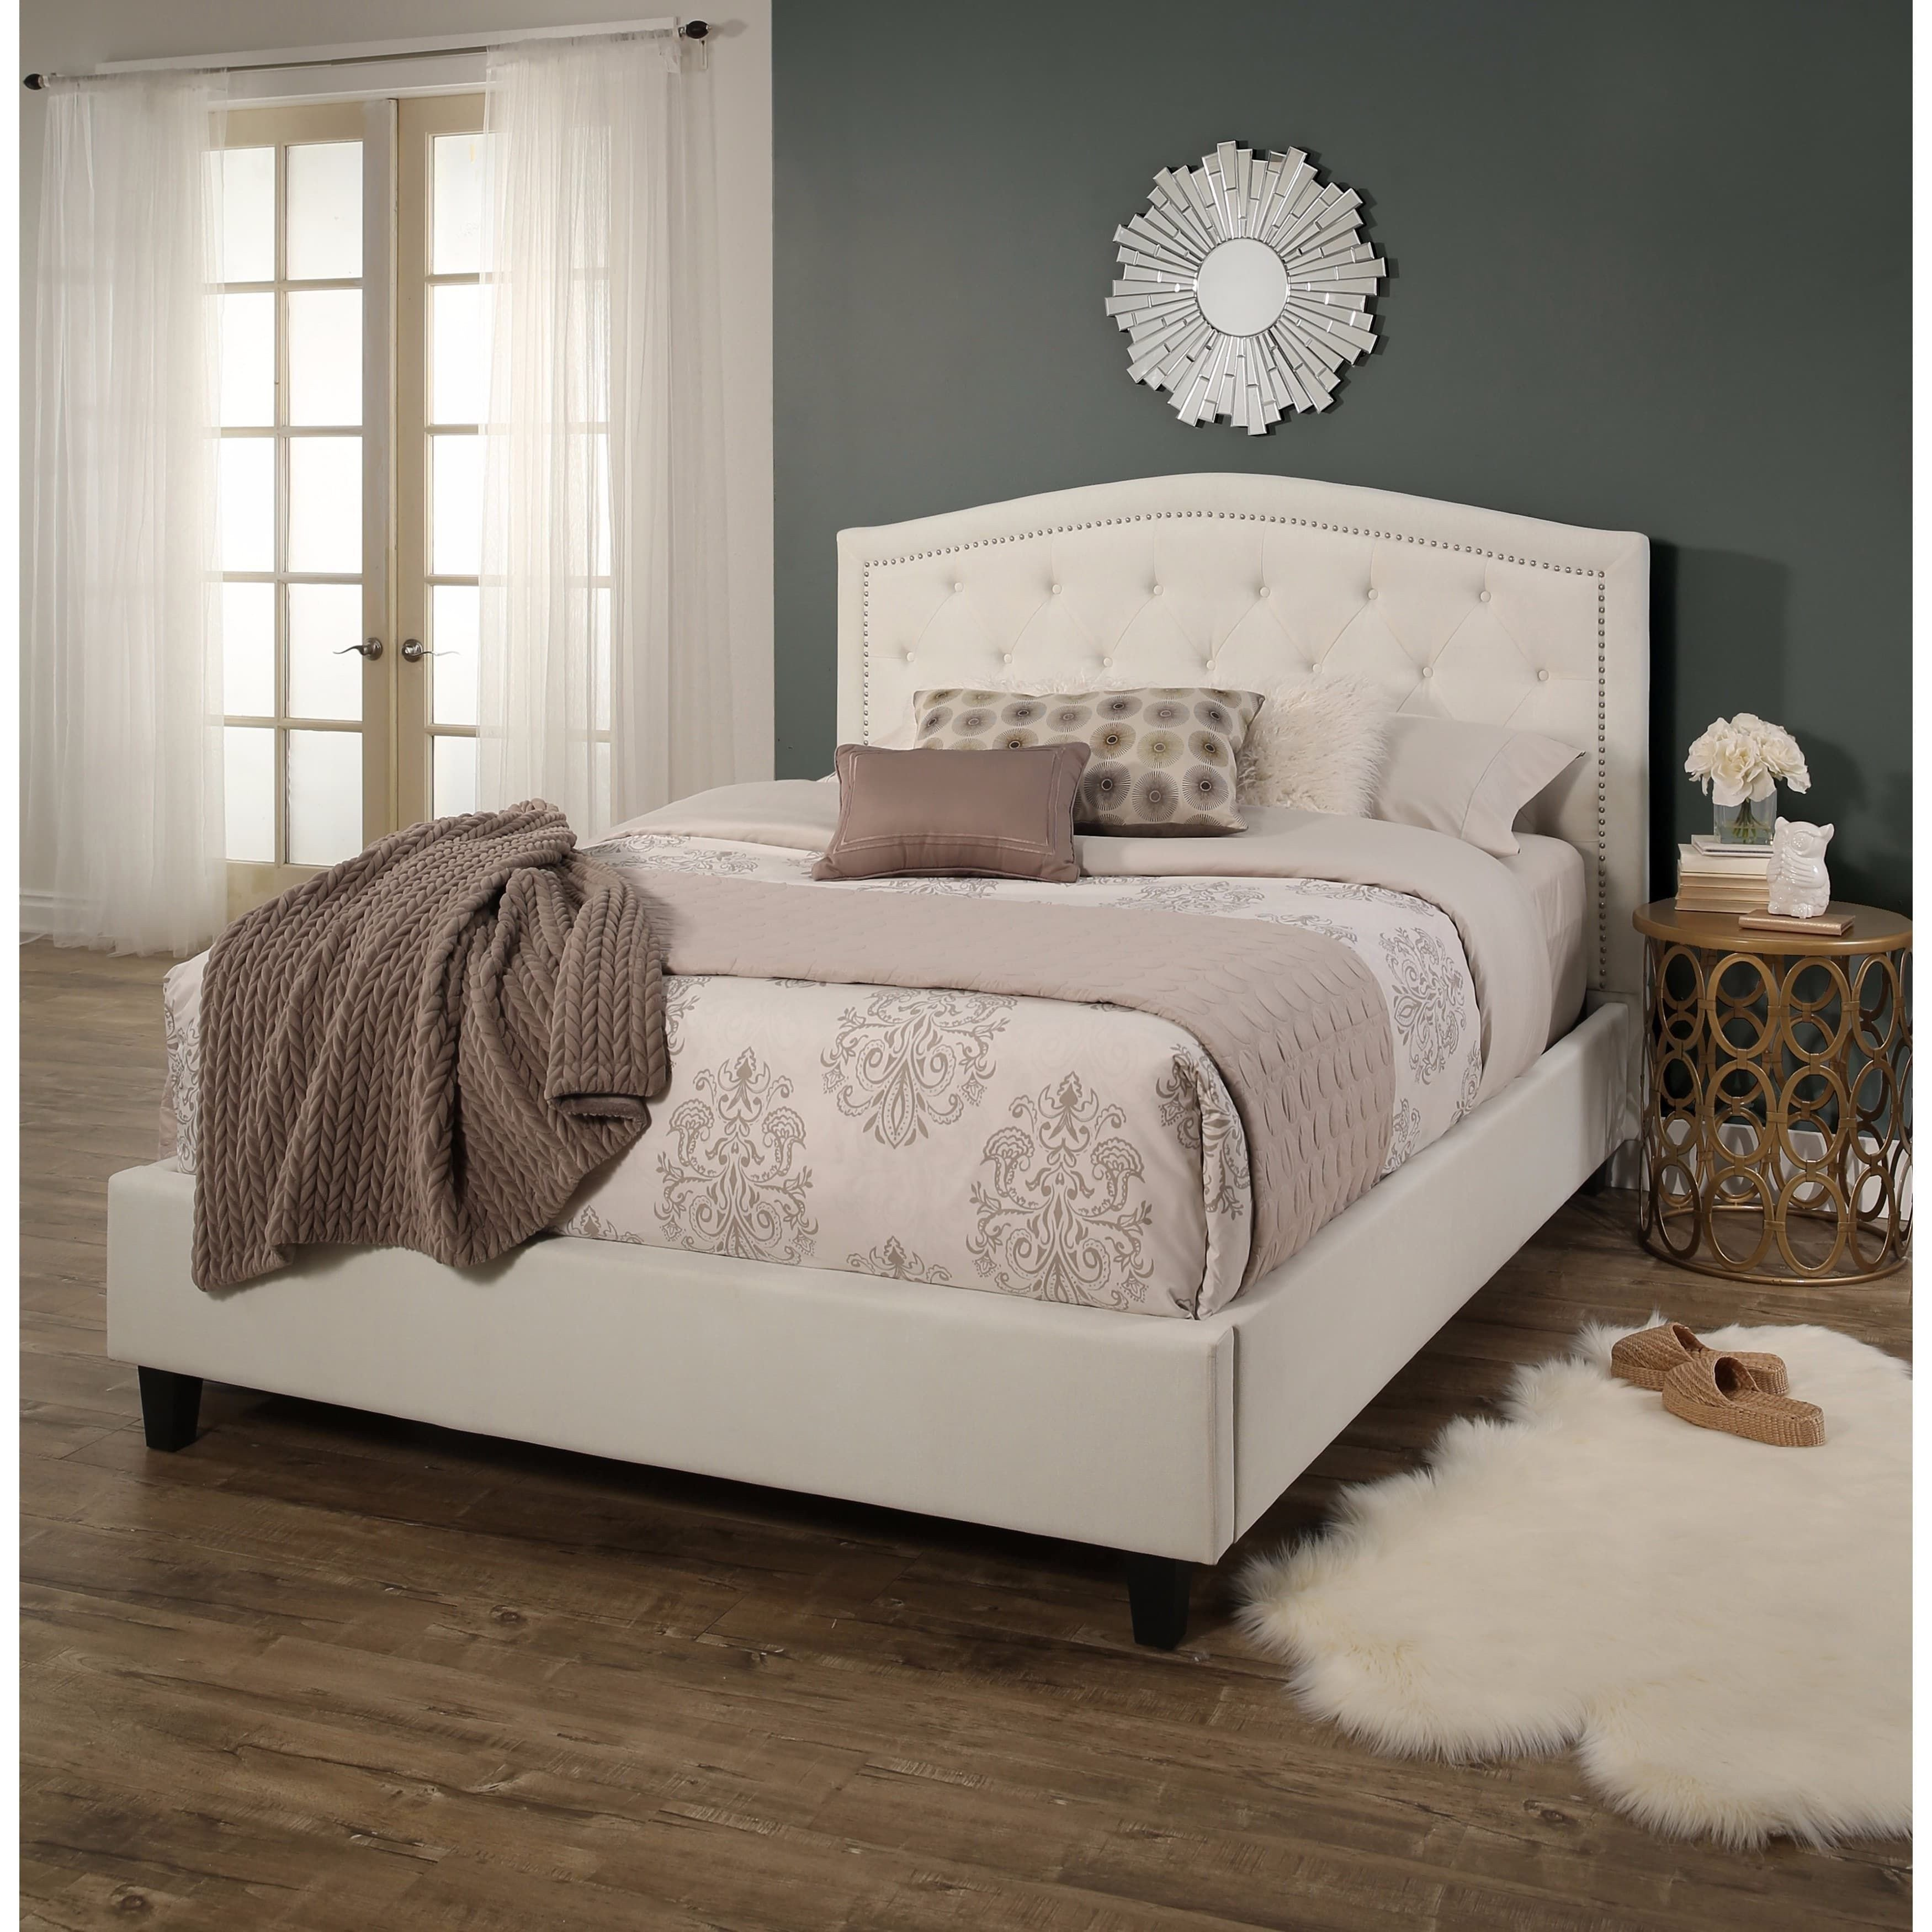 Tufted Headboard Bedroom Set Best Of Virgil Upholstered Tufted Queen Bed by Christopher Knight